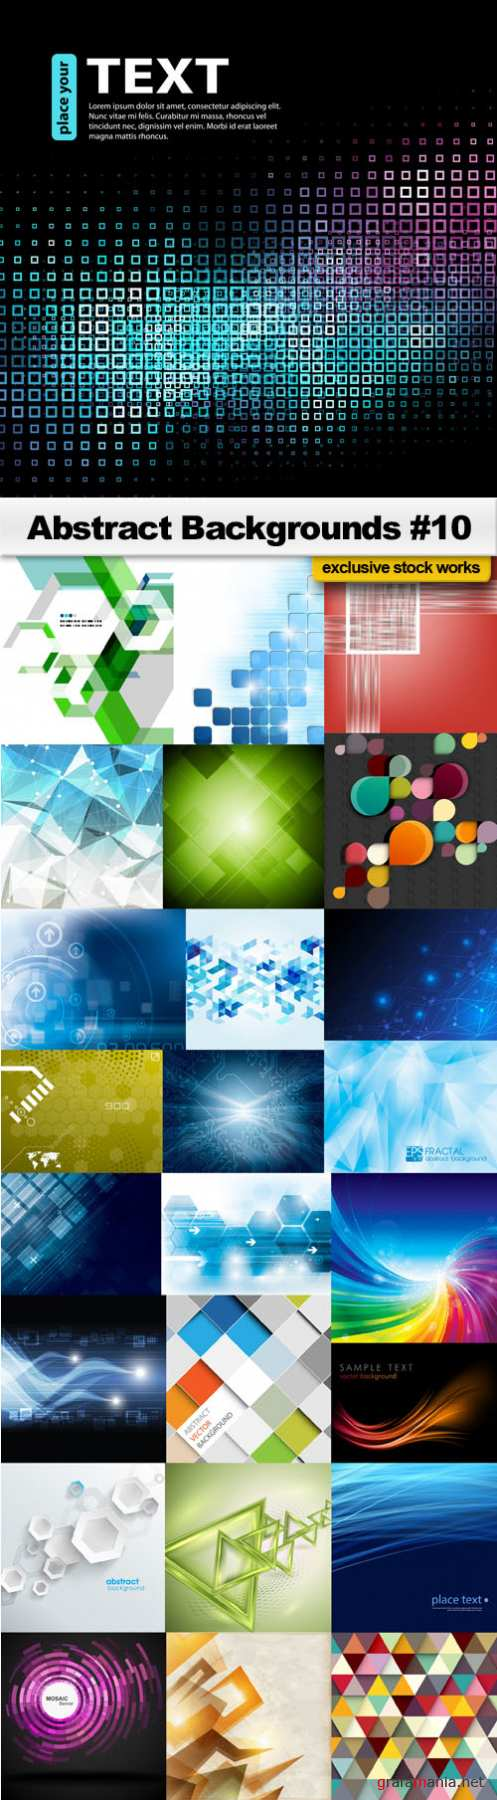 Abstract Backgrounds #10 - 25 EPS